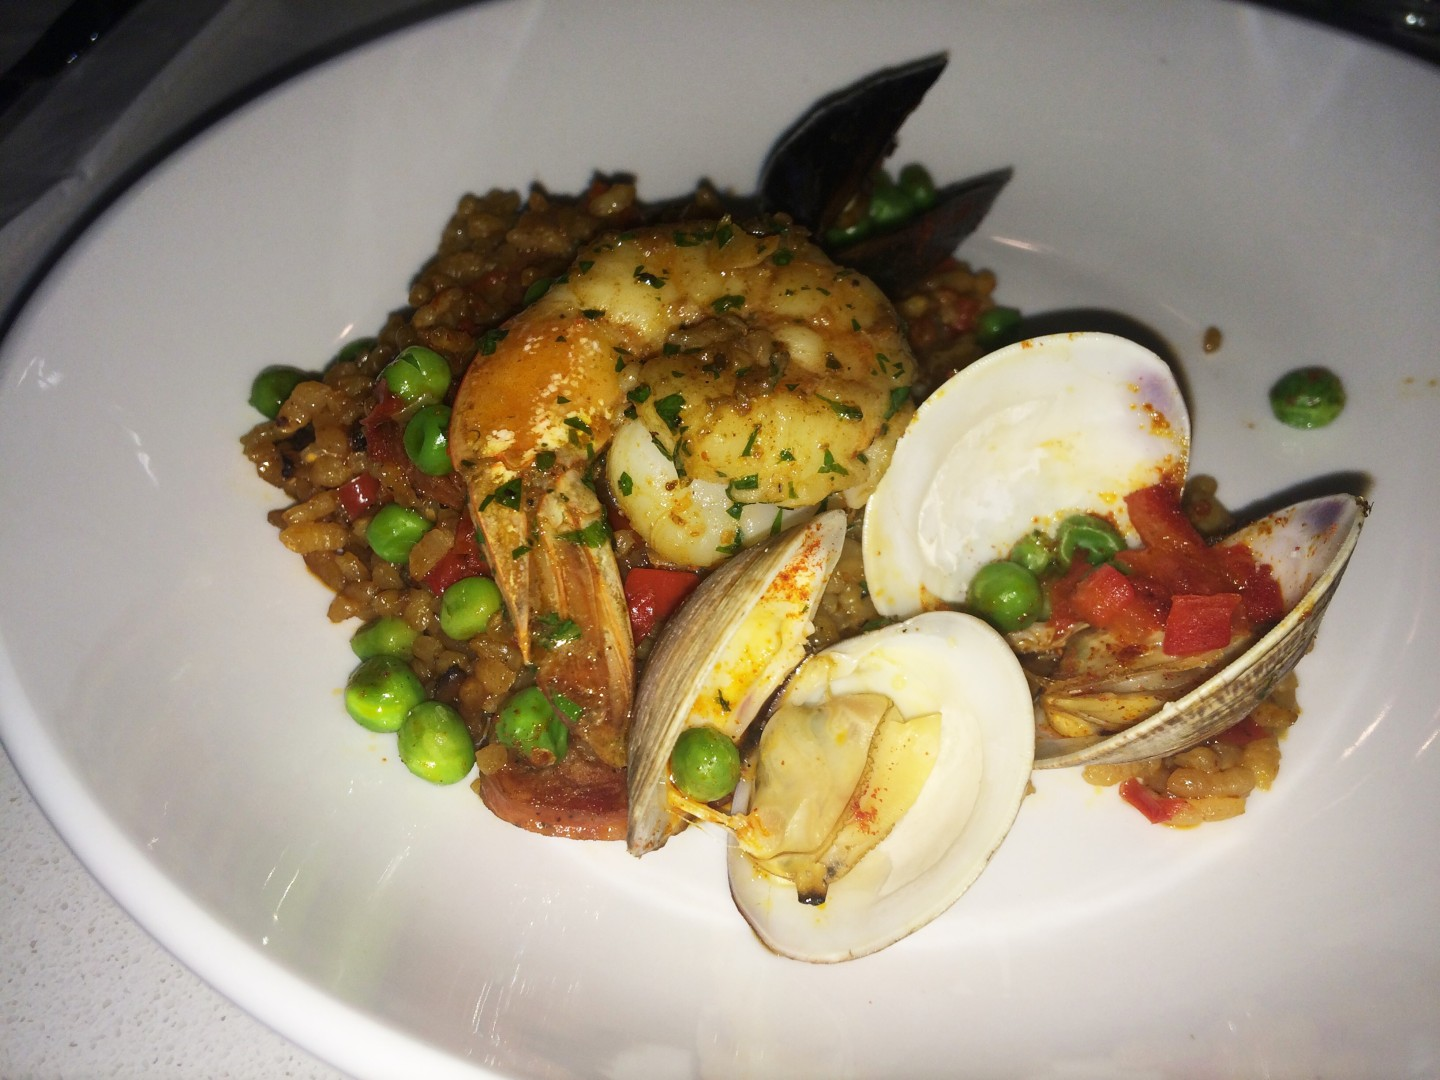 Seafood paella with clams, shrimp, mussels, chorizo, peas, pimienton, saffron, and lemon